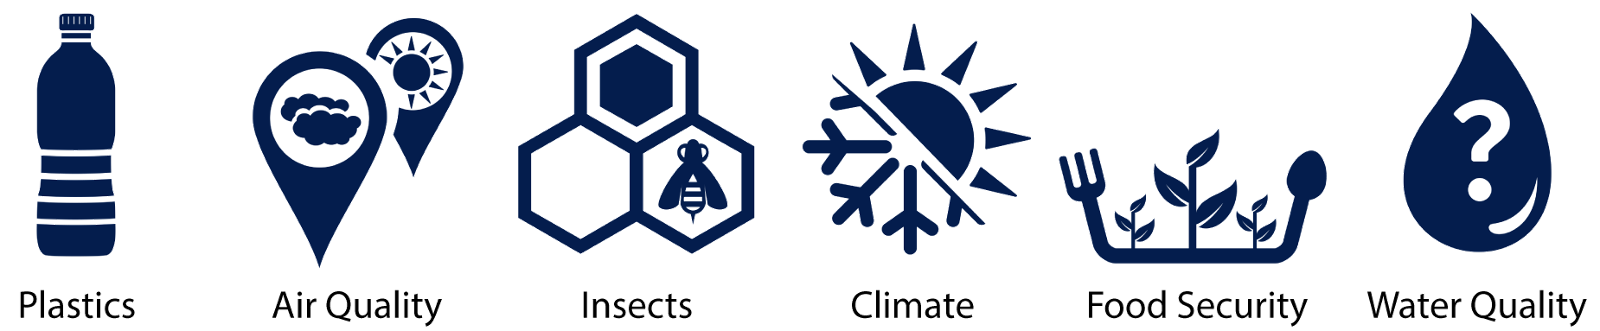 Blue and white logos that represent the six Earth Challenge 2020 research areas: plastics, air quality, insects, climate, food security, and water quality.